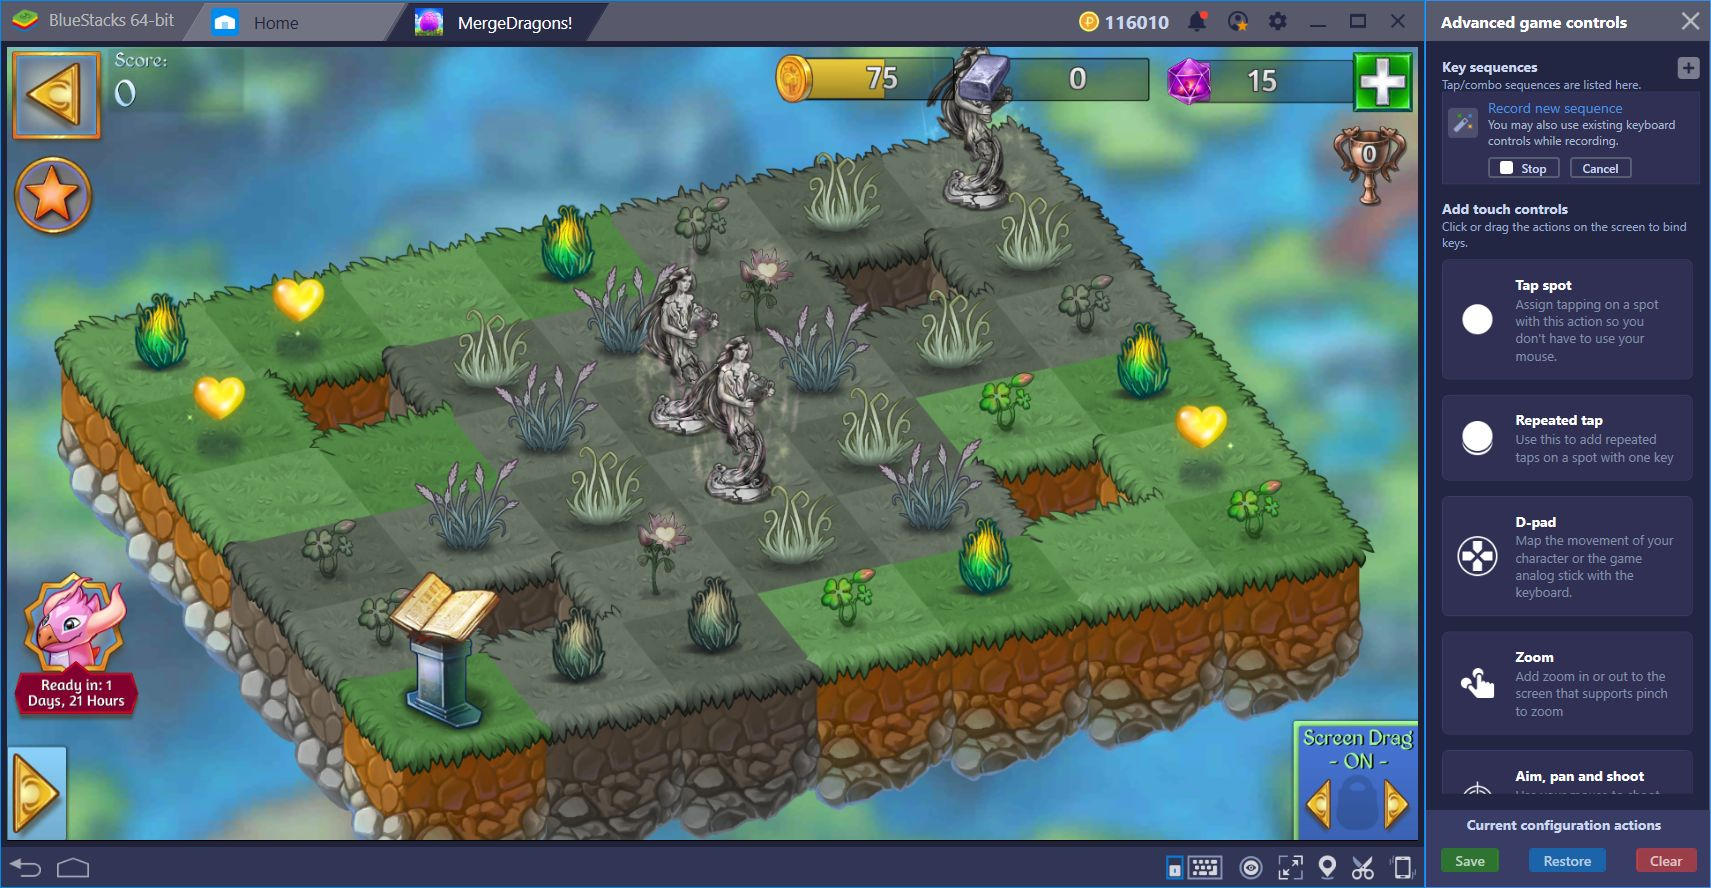 Merge Dragons on BlueStacks—Improve your Gameplay with our